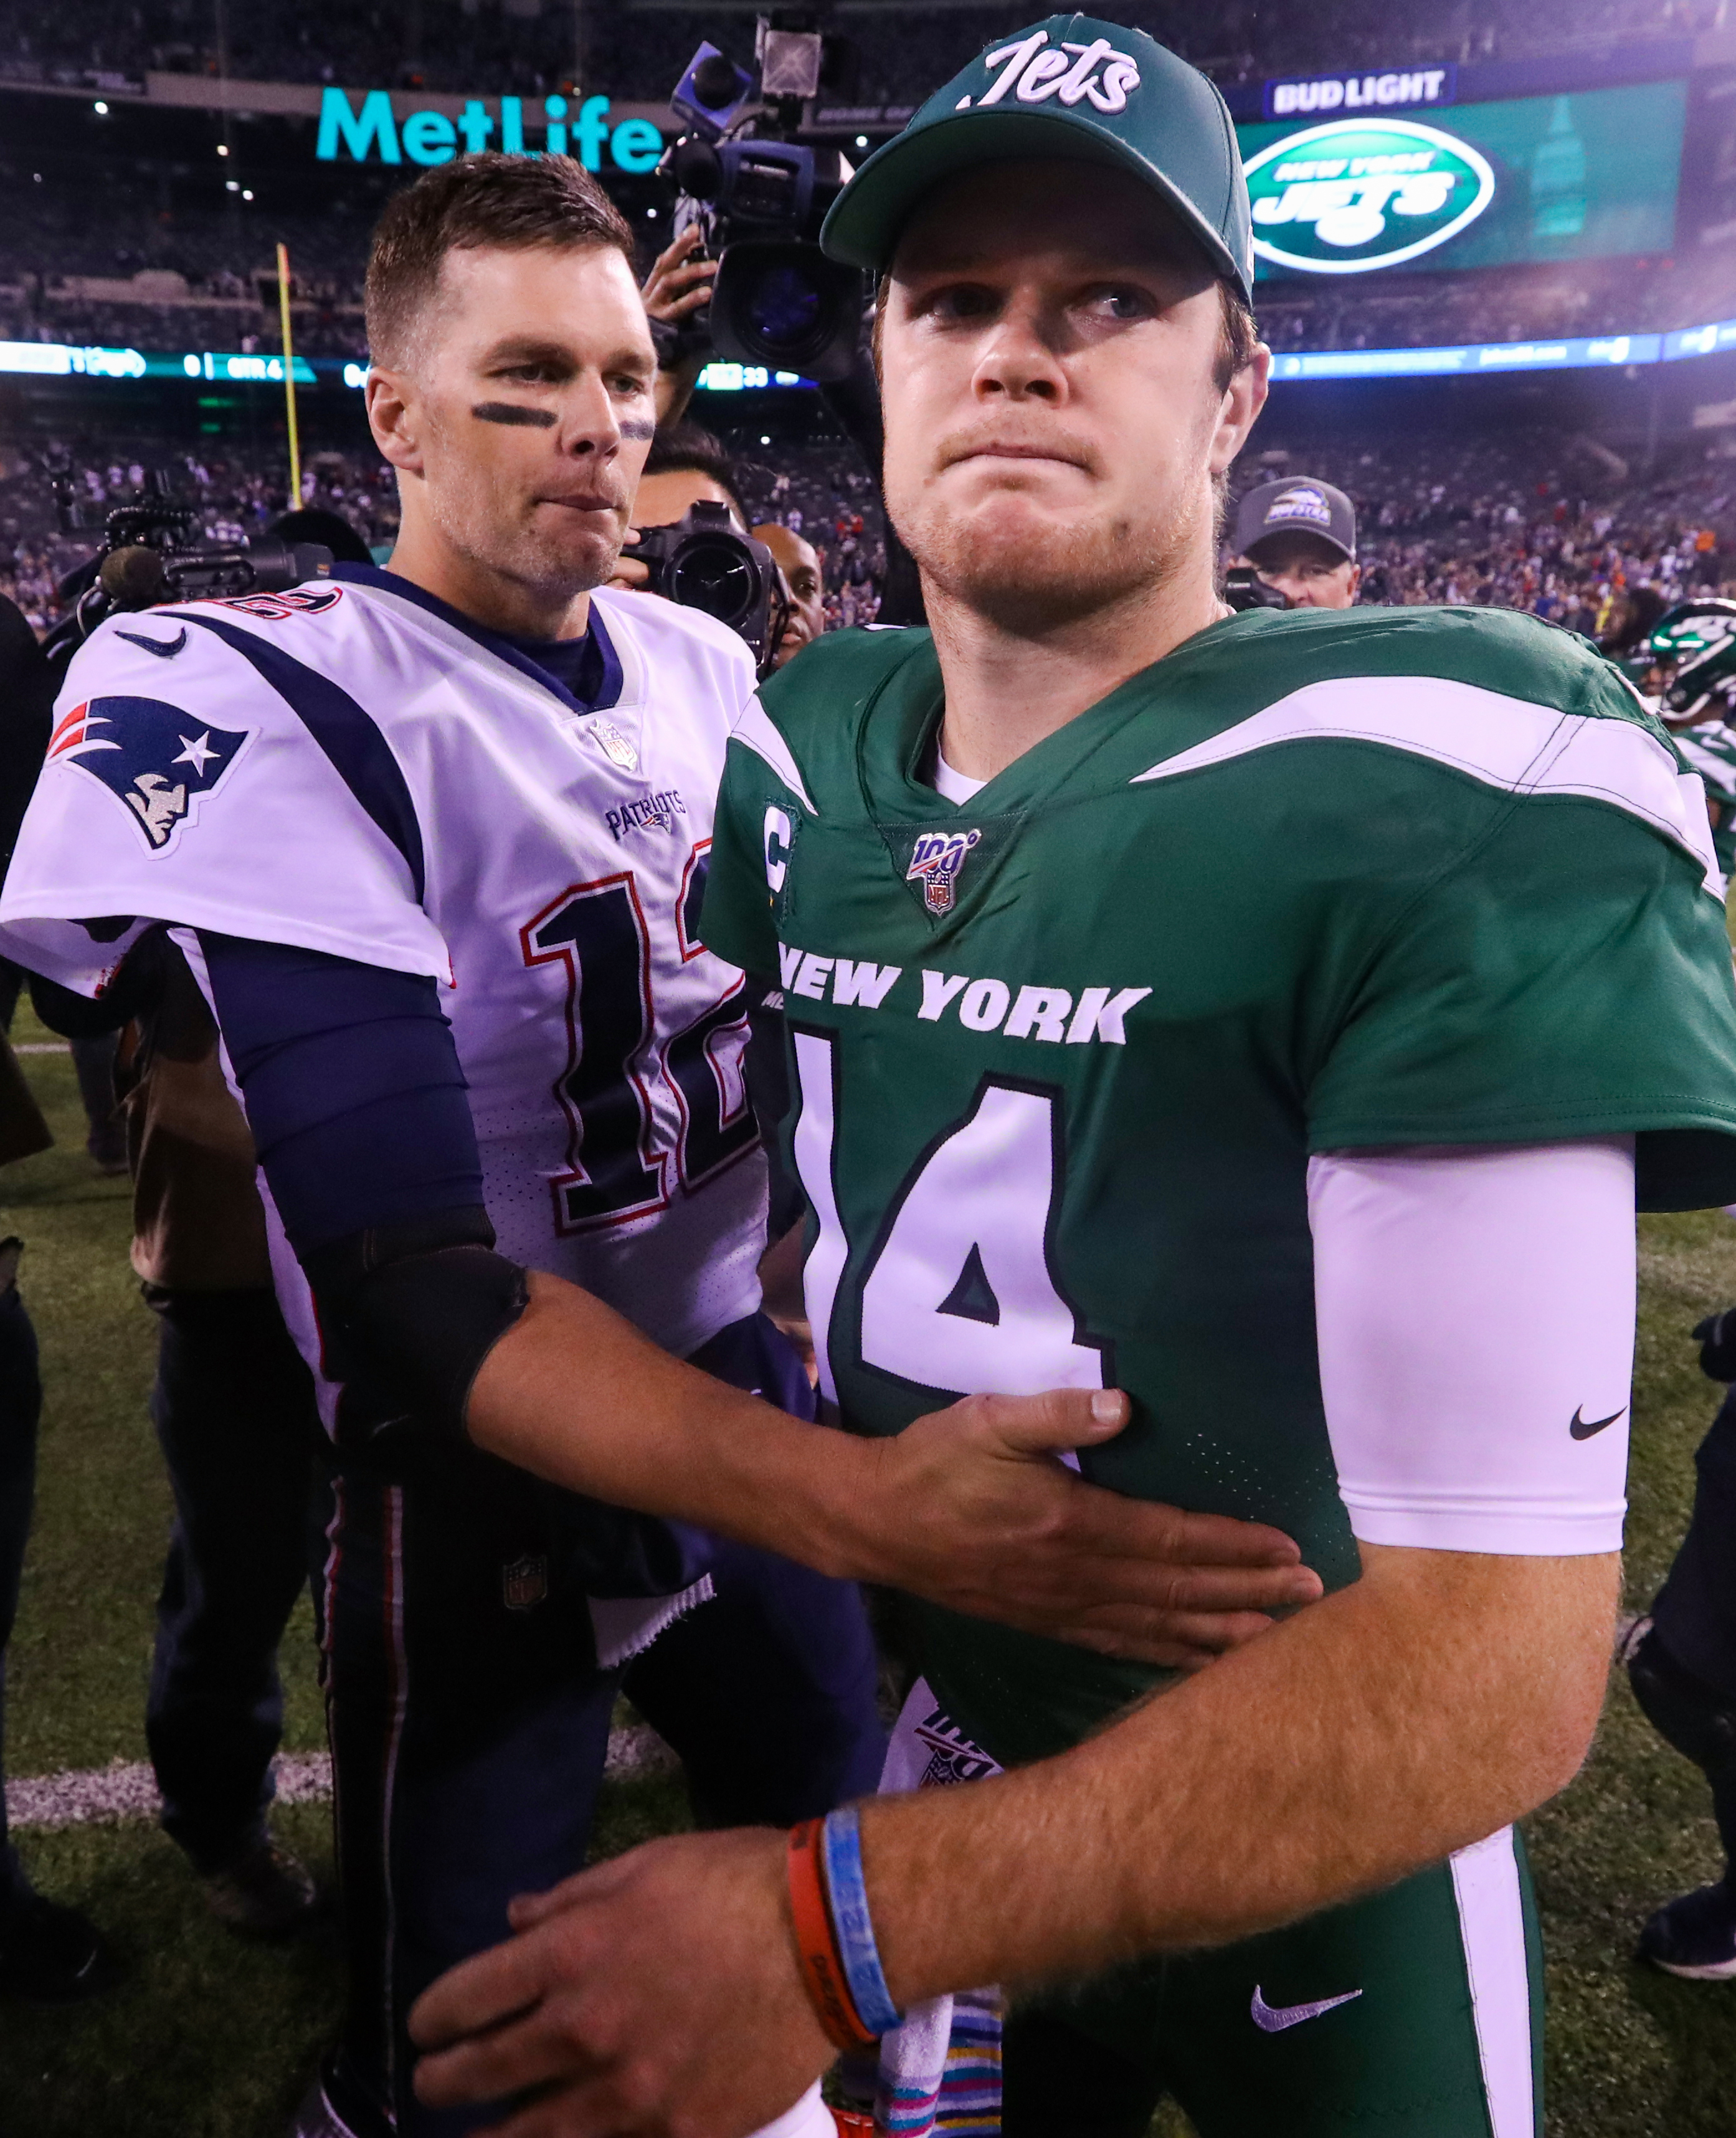 Patriots gloat after making Jets' Sam Darnold see 'ghosts' and eat his words in blowout: 'Ain't too many weaknesses over here'